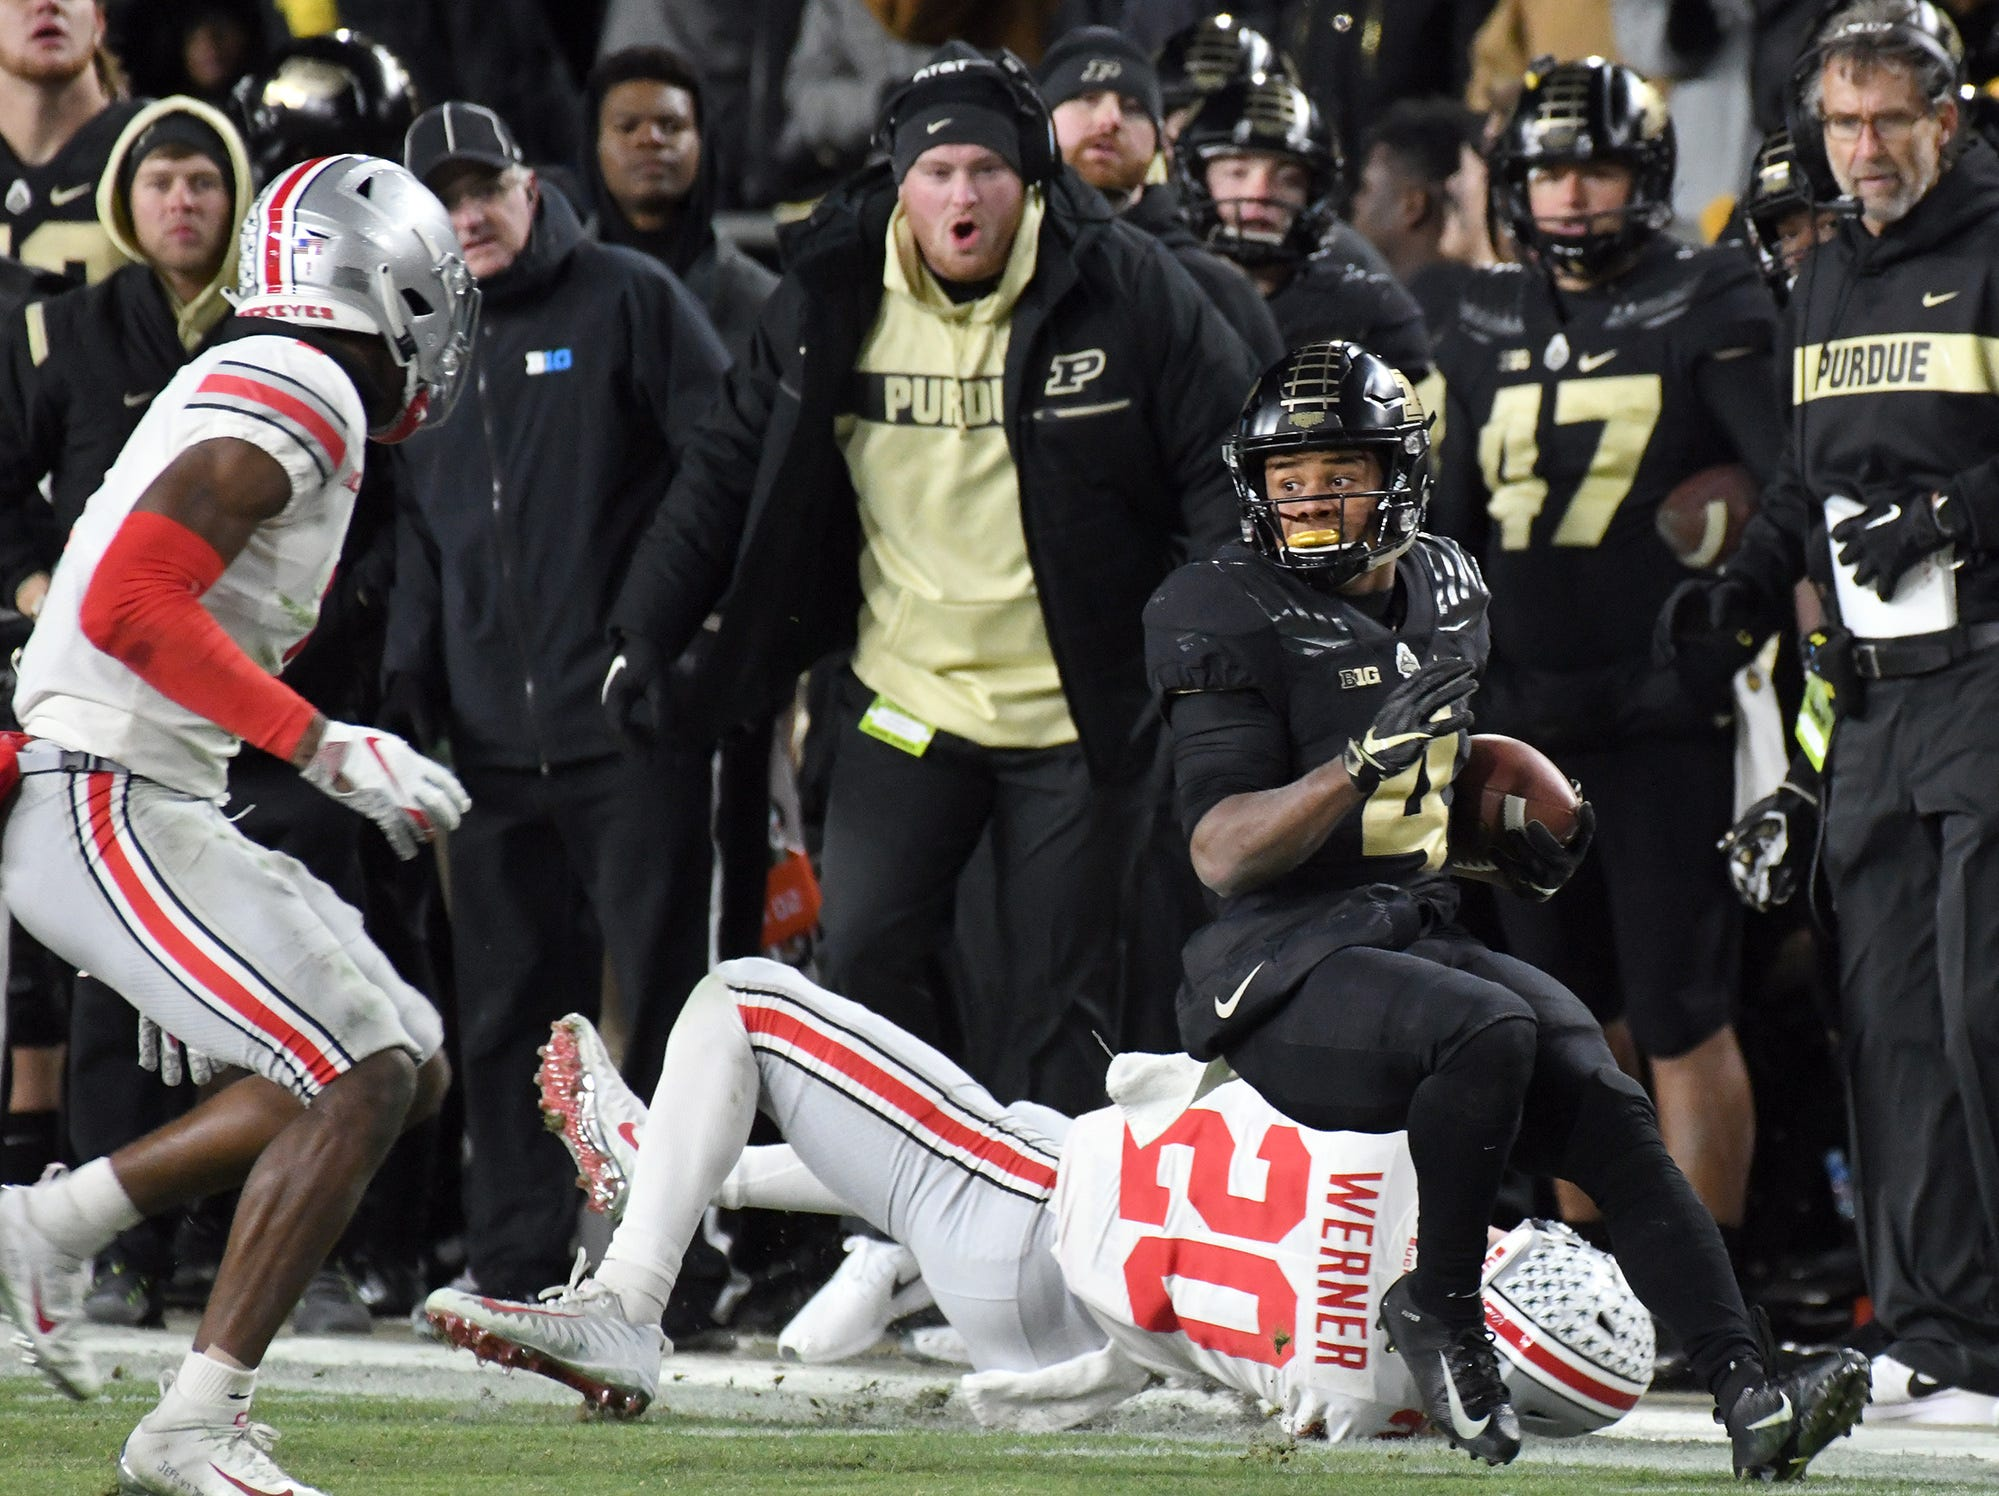 Purdue's Rondale Moore as Purdue upsets Ohio State in West Lafayette on Saturday October 20, 2018.